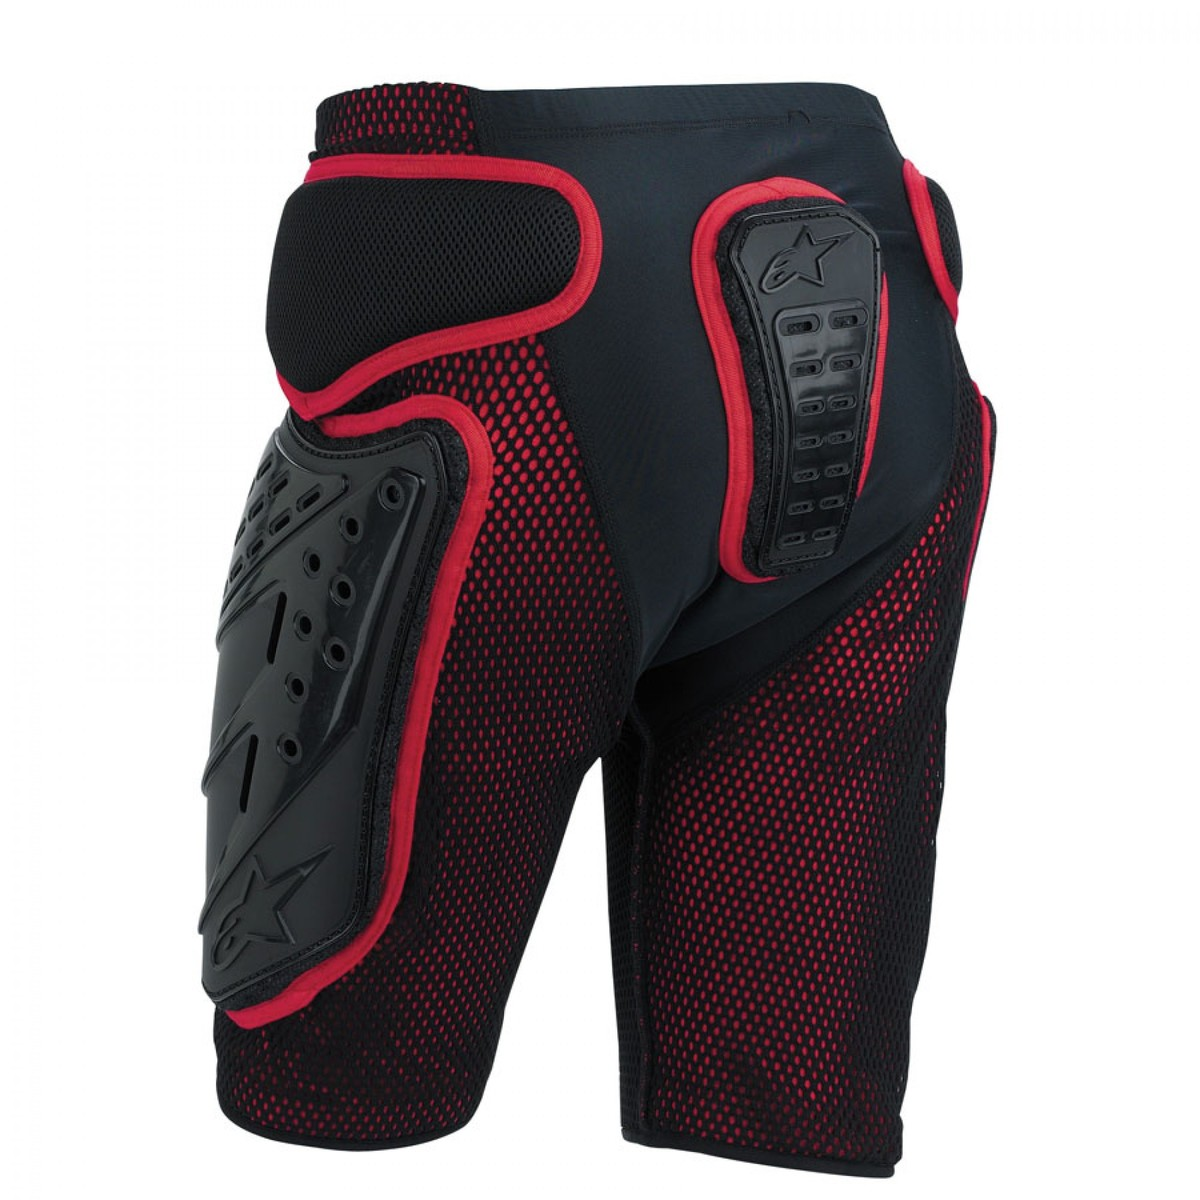 Cheap shorts motocross, Buy Quality motocross shorts directly from China shorts downhill Suppliers: Men Off-Road DH MTB MX Downhill Shorts Motocross Racing Bicycle Motorcycle Mens Short Mountain Bike Motocross MX Sport Shorts Enjoy Free Shipping Worldwide! Limited Time Sale Easy Return/5(11).